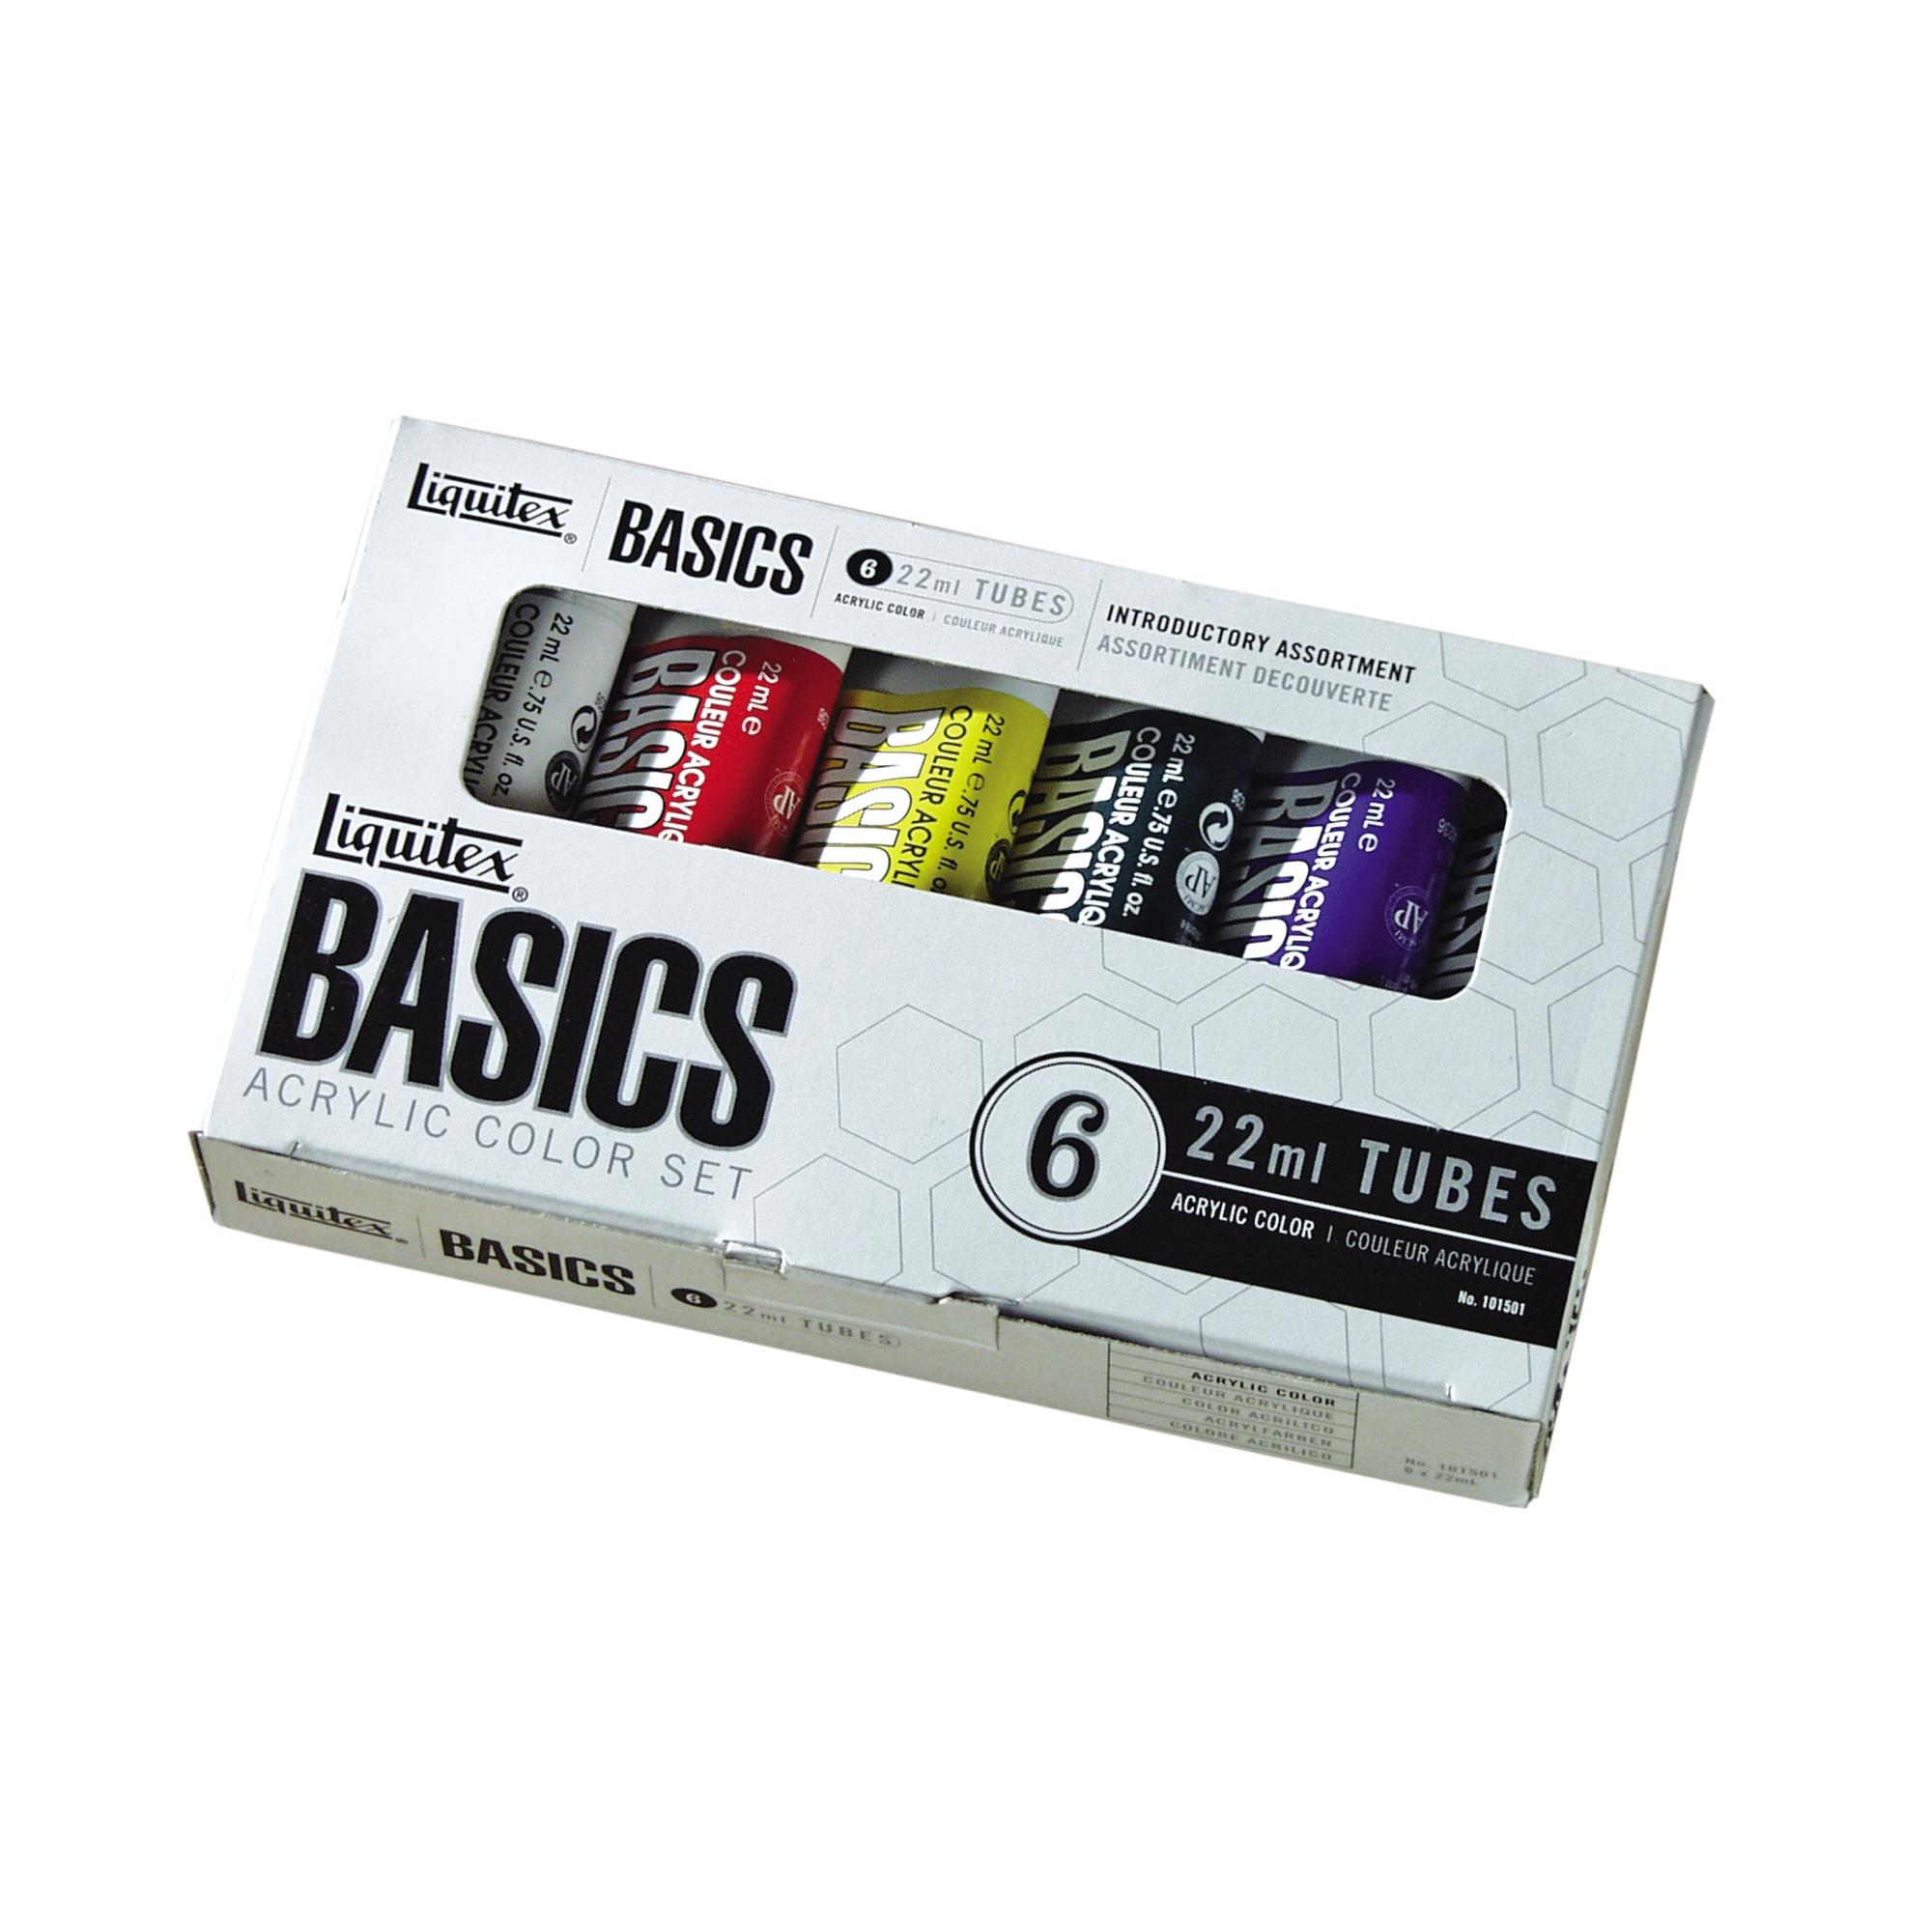 Liquitex BASICS Acrylic Paint 22ml/Tube, 6-Piece Set